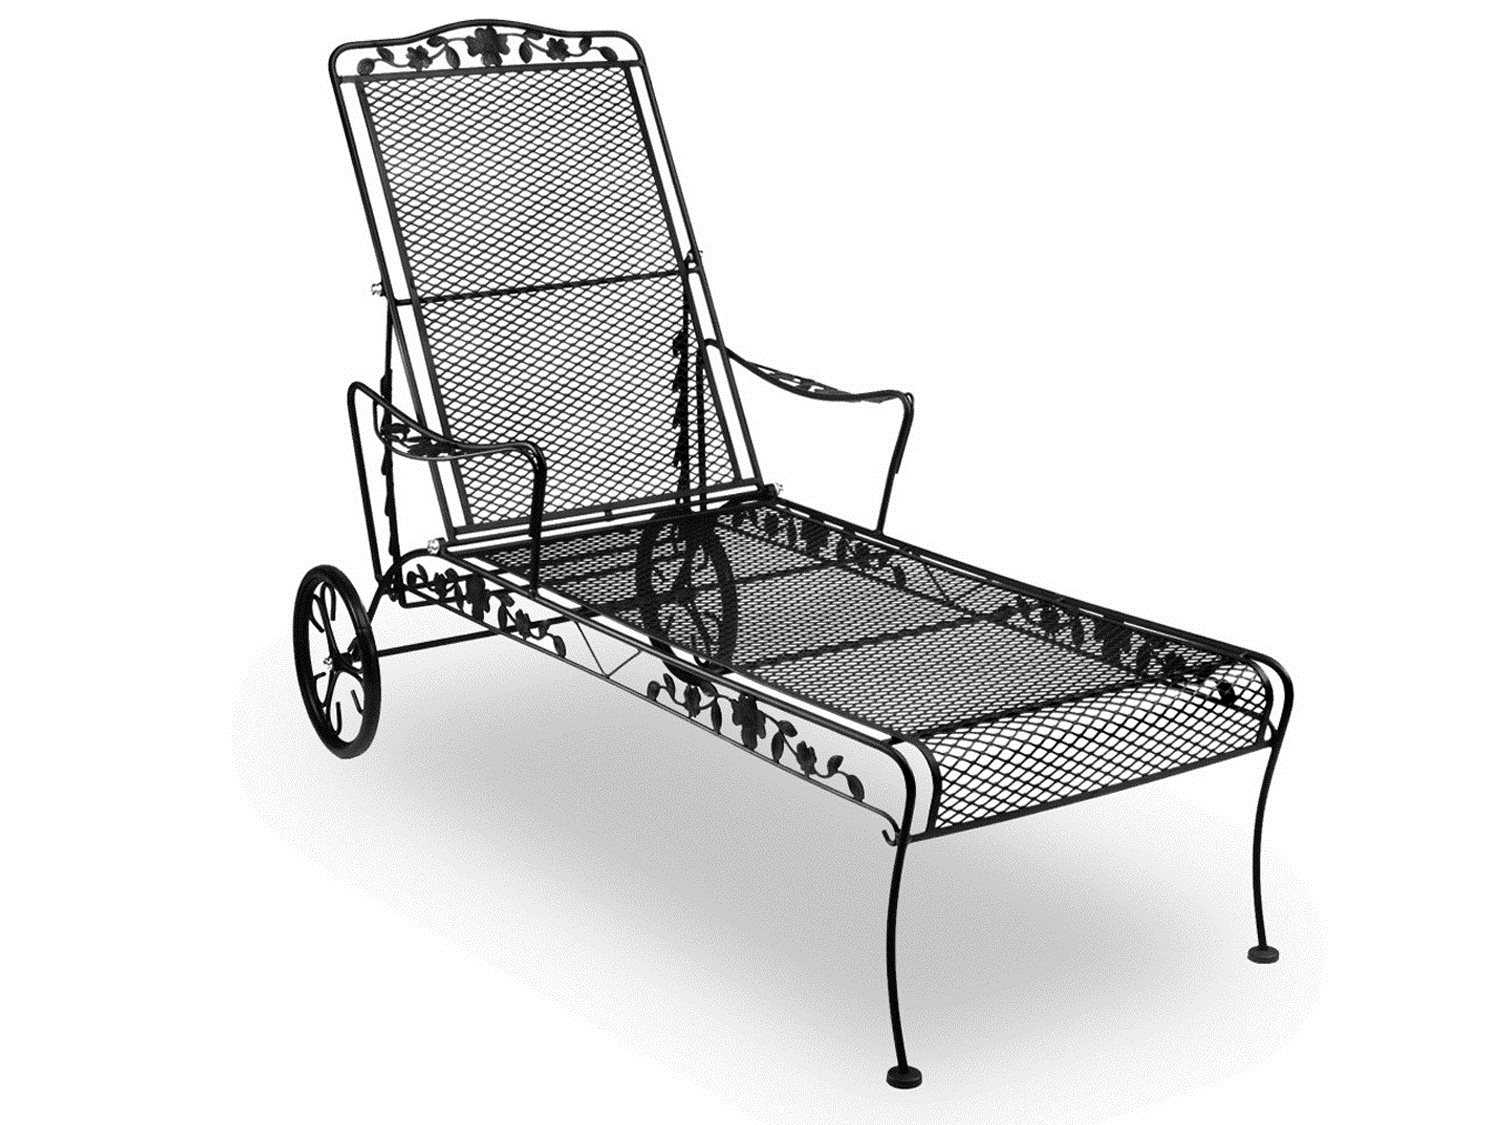 Meadowcraft dogwood wrought iron chaise lounge 7615400 01 - Chaise bar metal ...